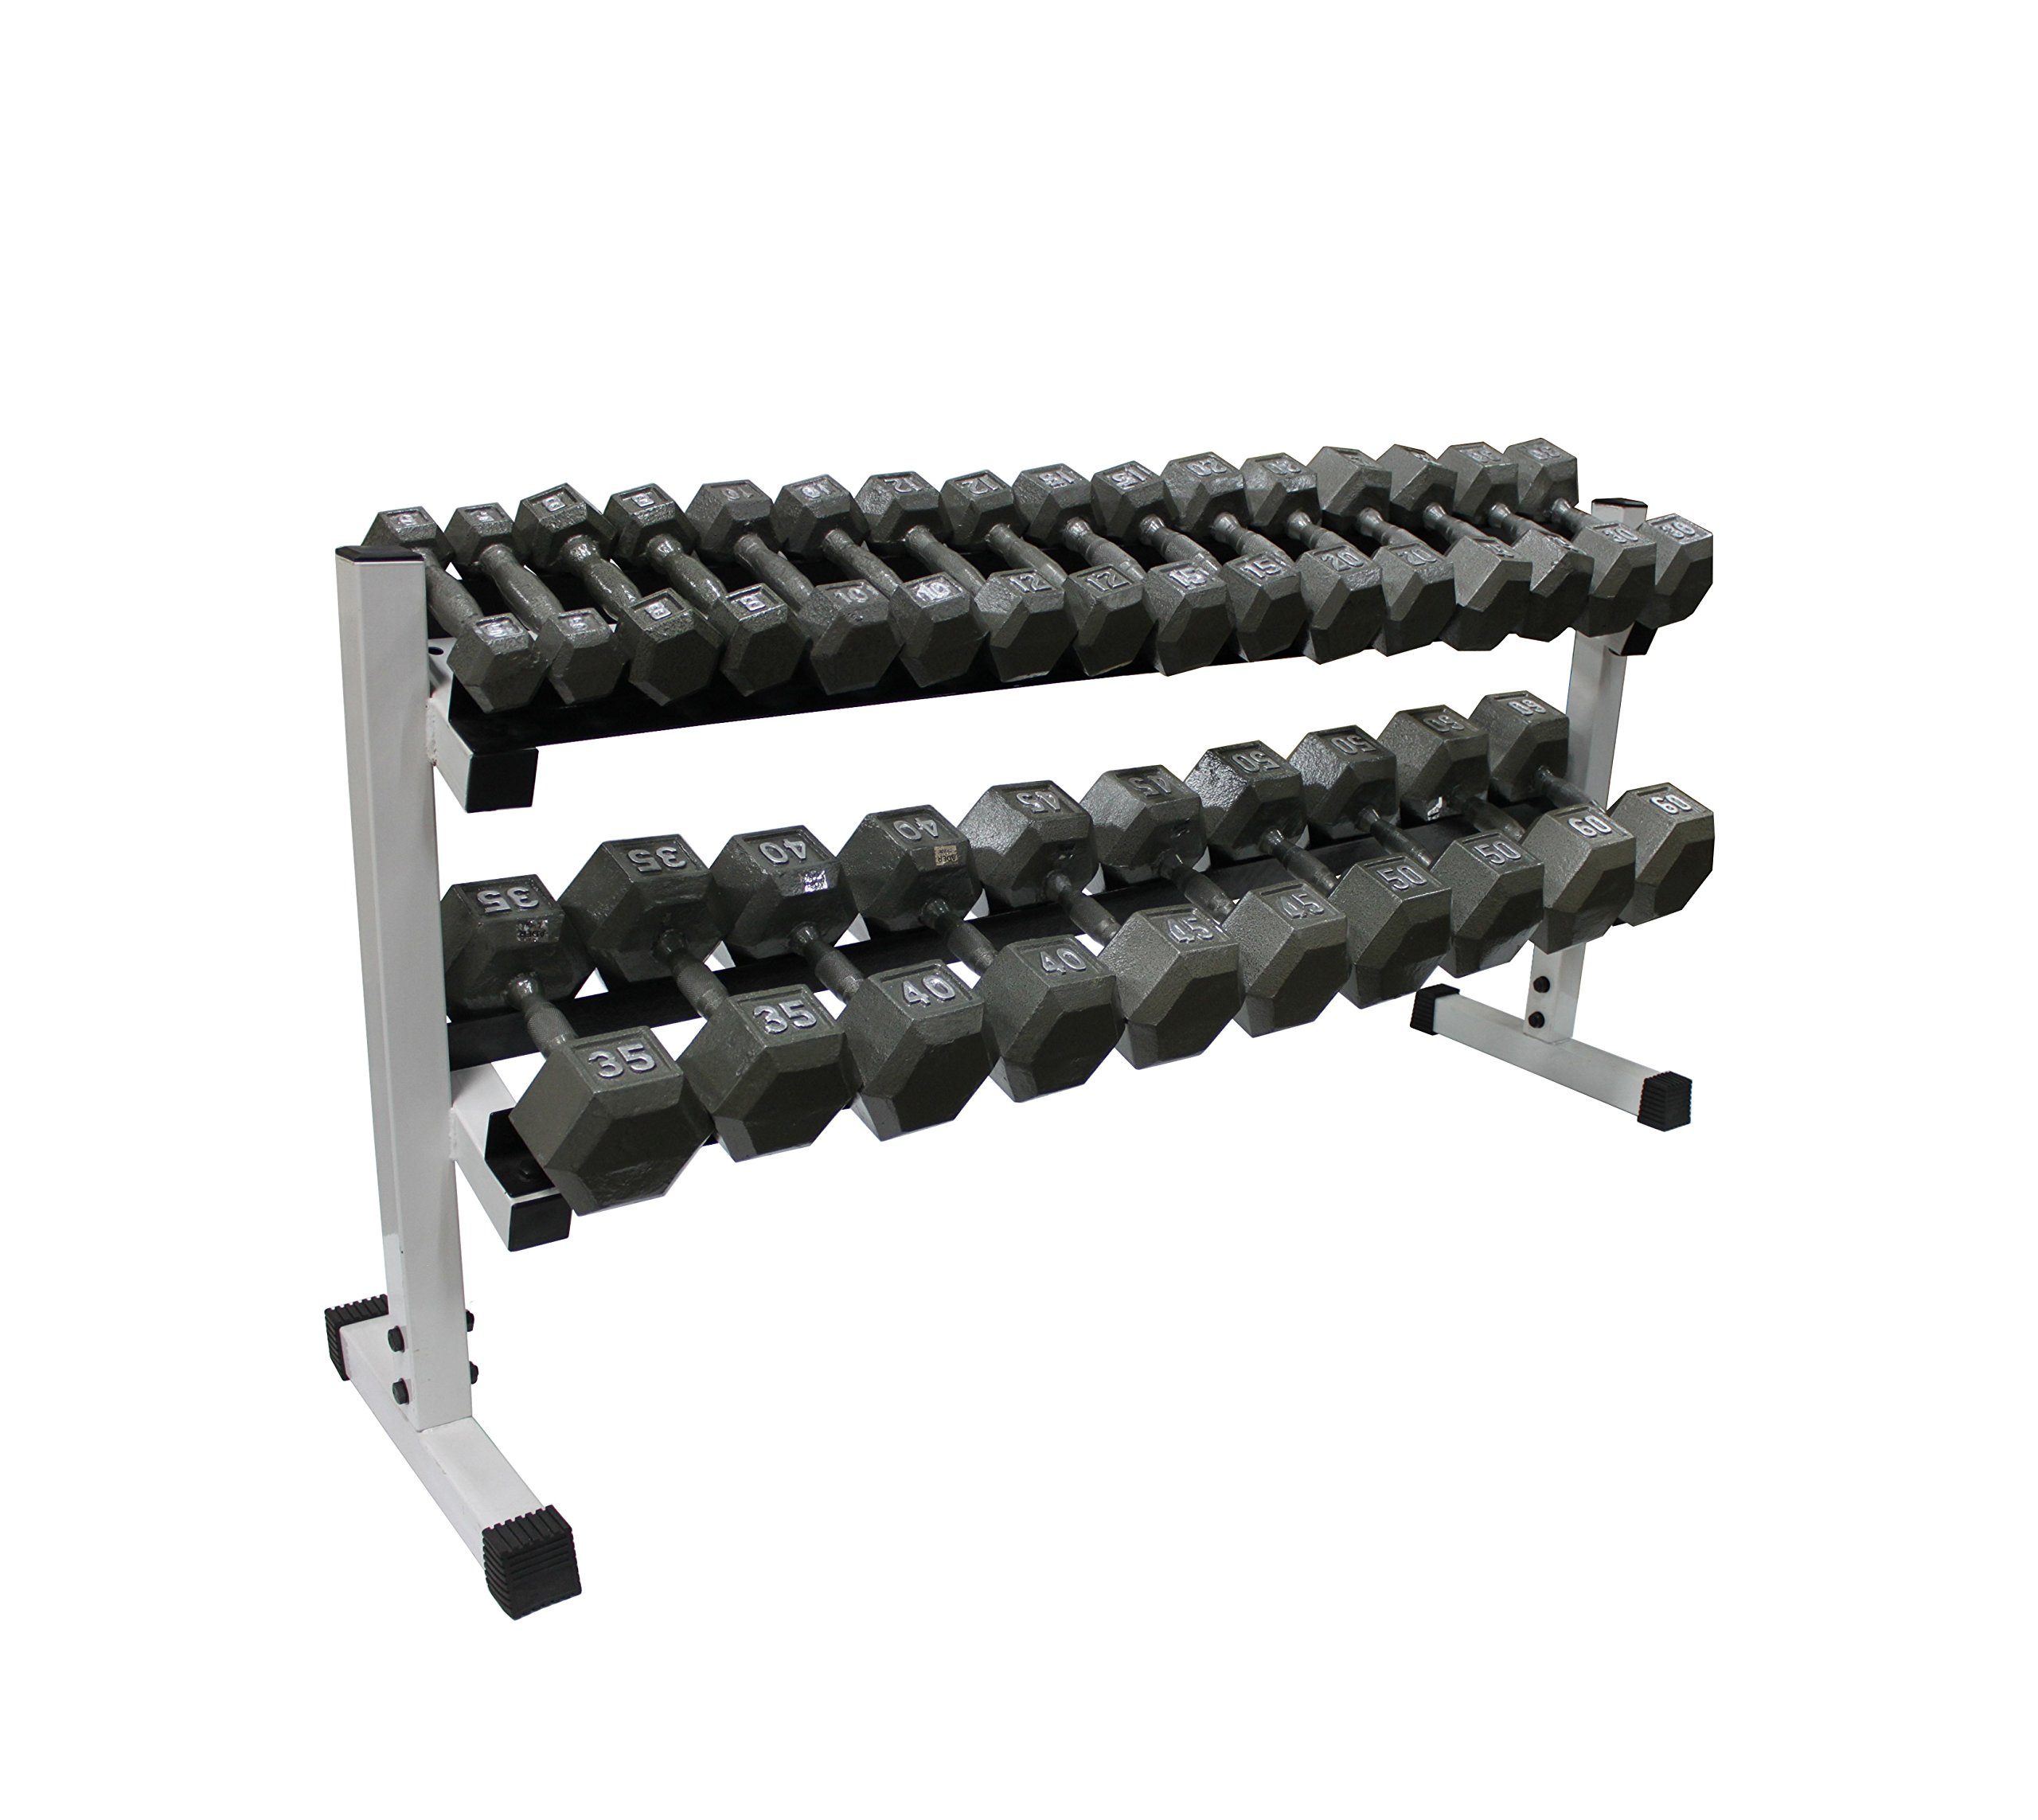 2-tier 60'' Dumbbell Rack w/ Hex Dumbbells by Ader Sporting Goods (Image #1)